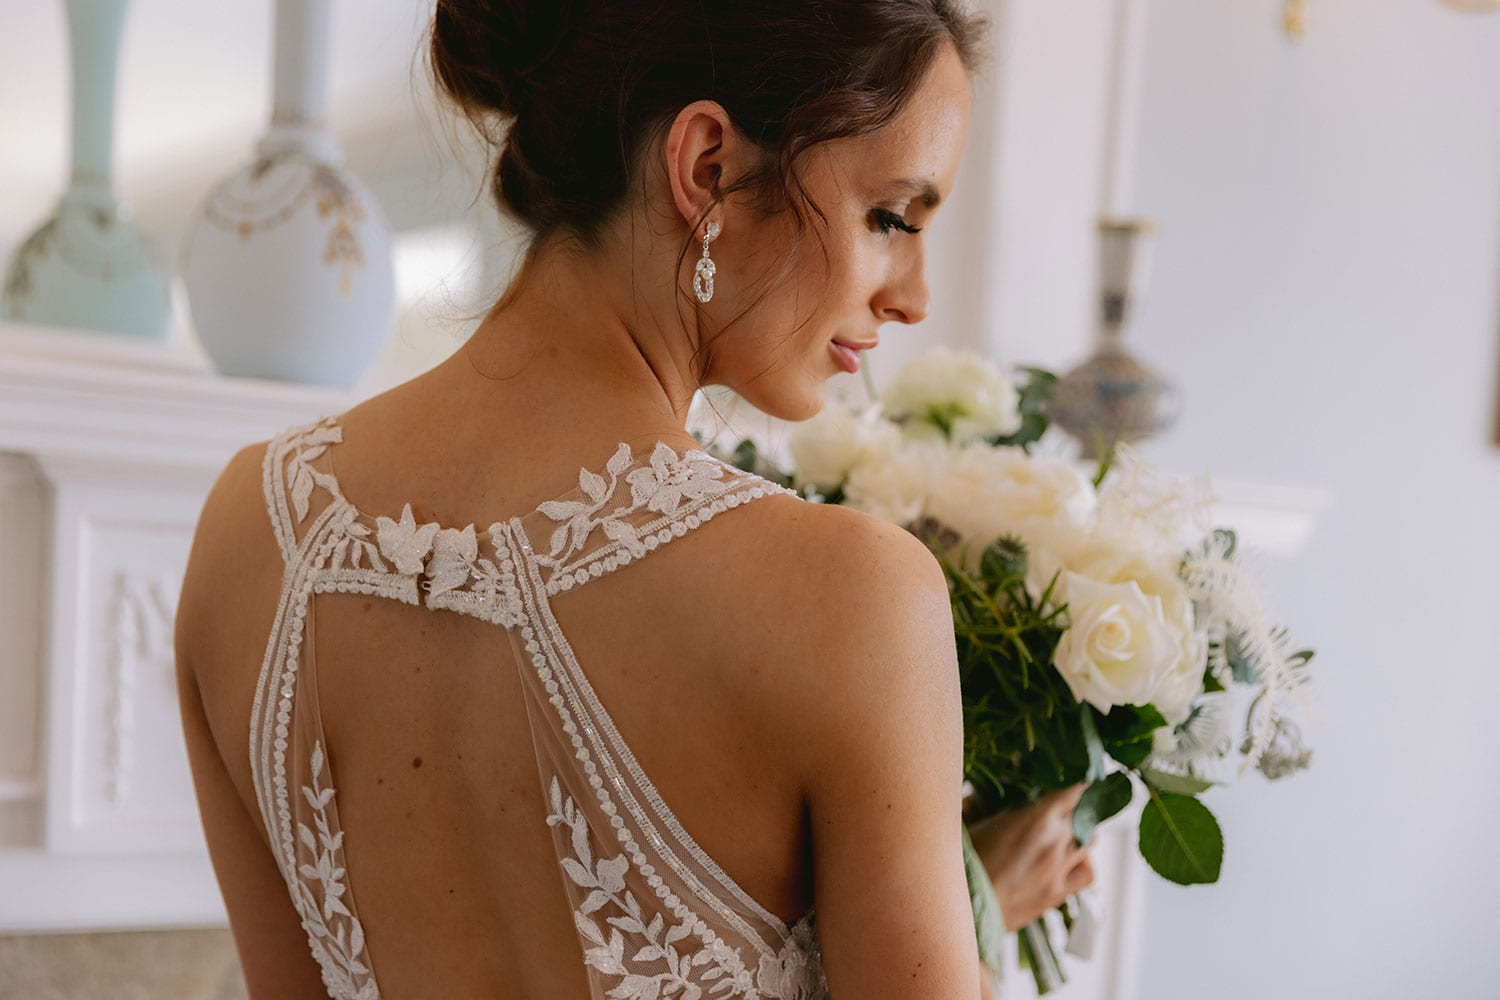 Tia Wedding gown from Vinka Design - This dreamy sculpted wedding dress has a deep V-shaped illusion neckline with beaded floral lace and an open back. The skirt has layers of soft tulle that glide with movement. Model wearing gown showing beautiful open back lace detail, inside warmly lit heritage room.